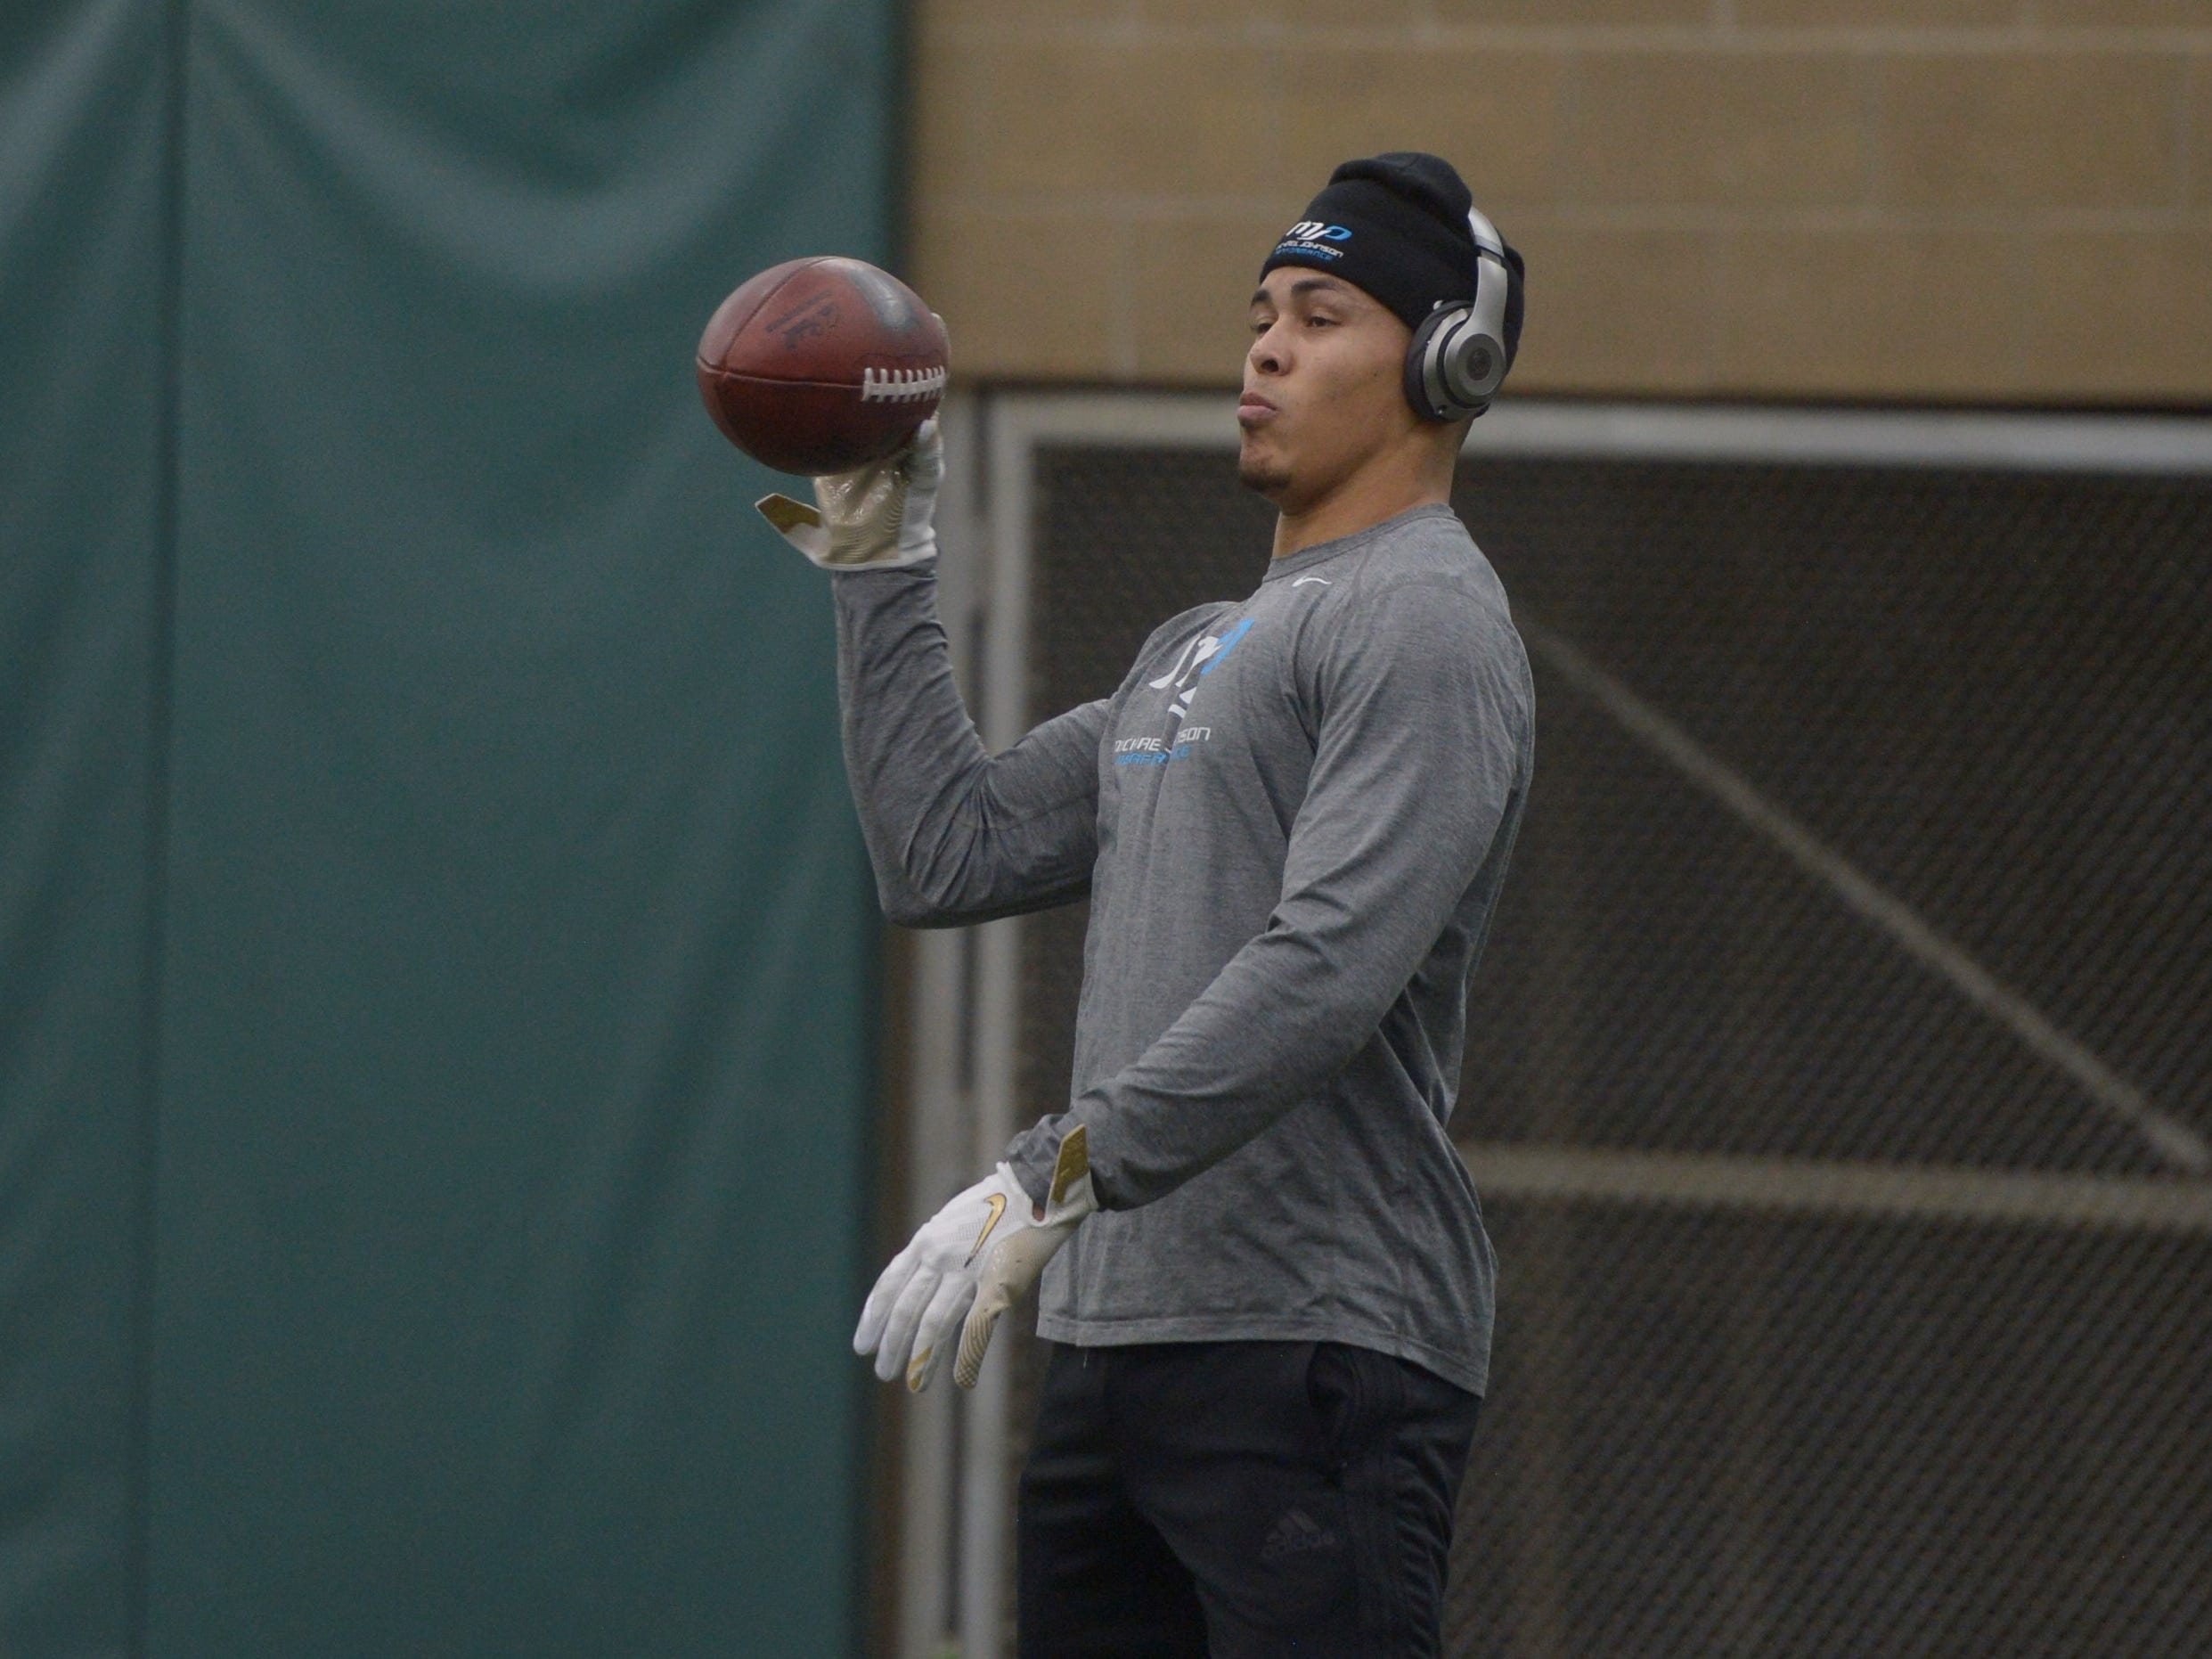 Former Colorado State receiver Bisi Johnson catches passes during warmups at CSU's pro day at the Indoor Practice Facility on Wednesday, March 6, 2019.